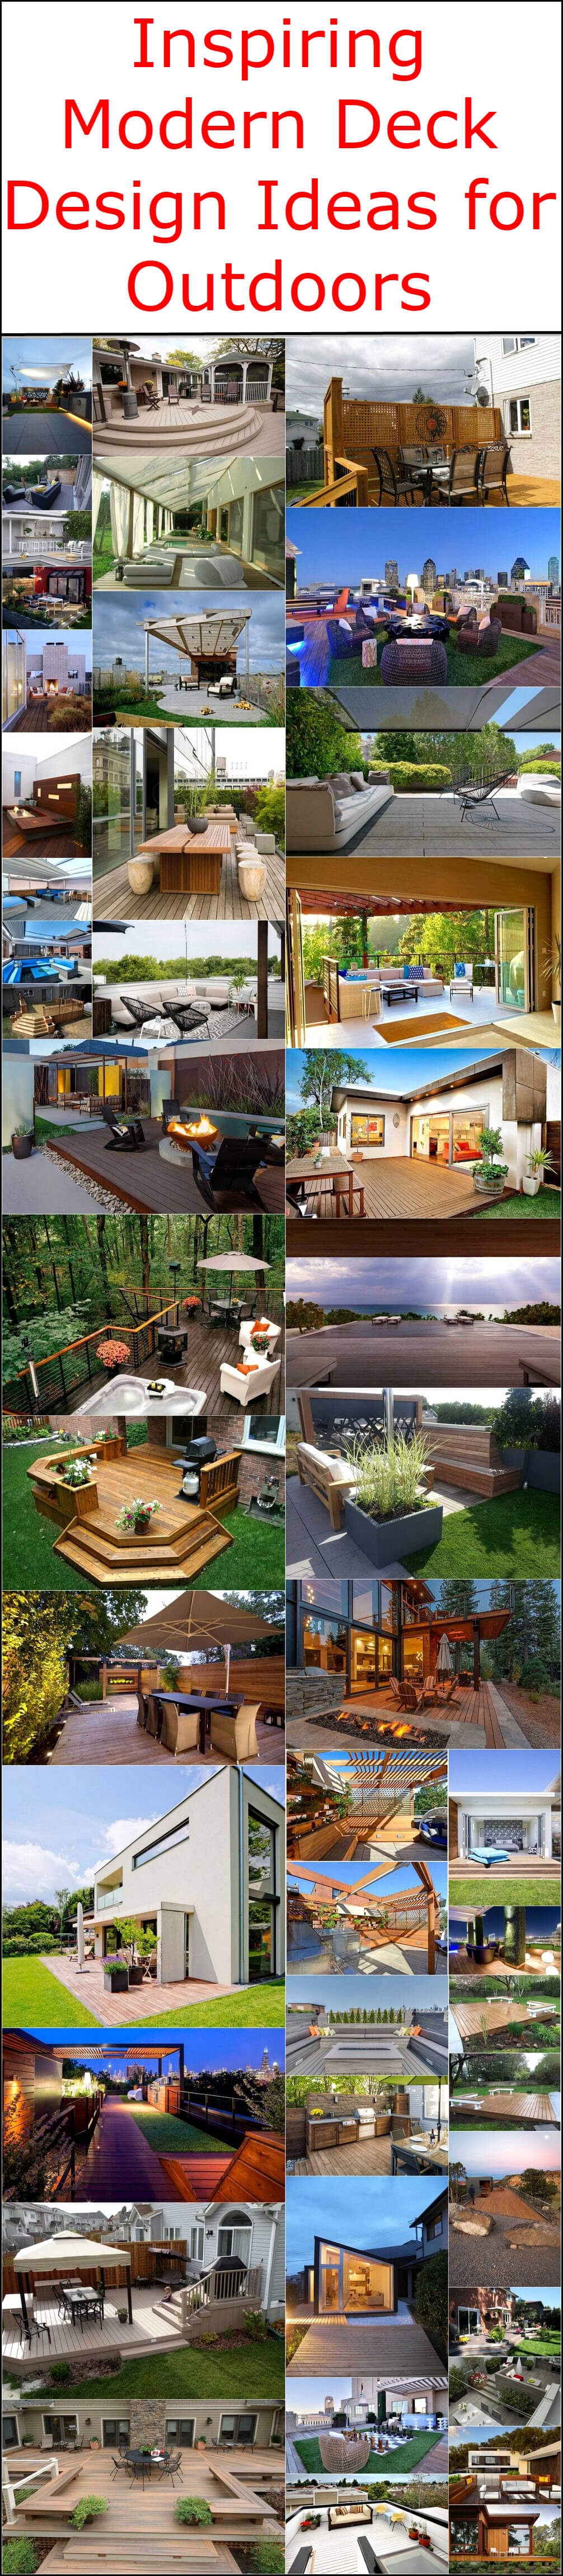 Inspiring Modern Deck Design Ideas for Outdoors